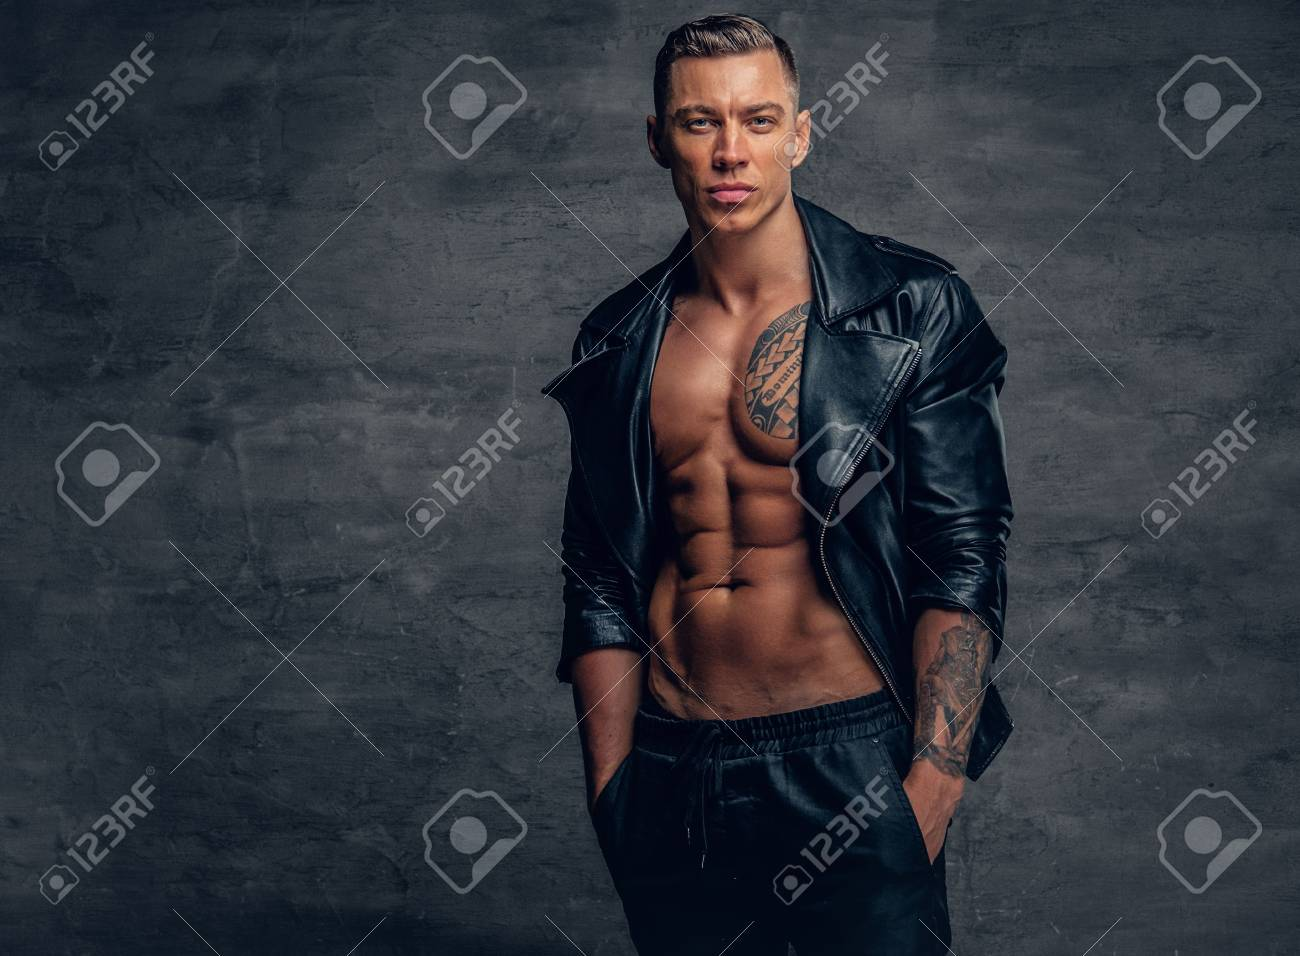 Stylish Muscular Male With Tattoo On A Chest, Dressed In A Black ...